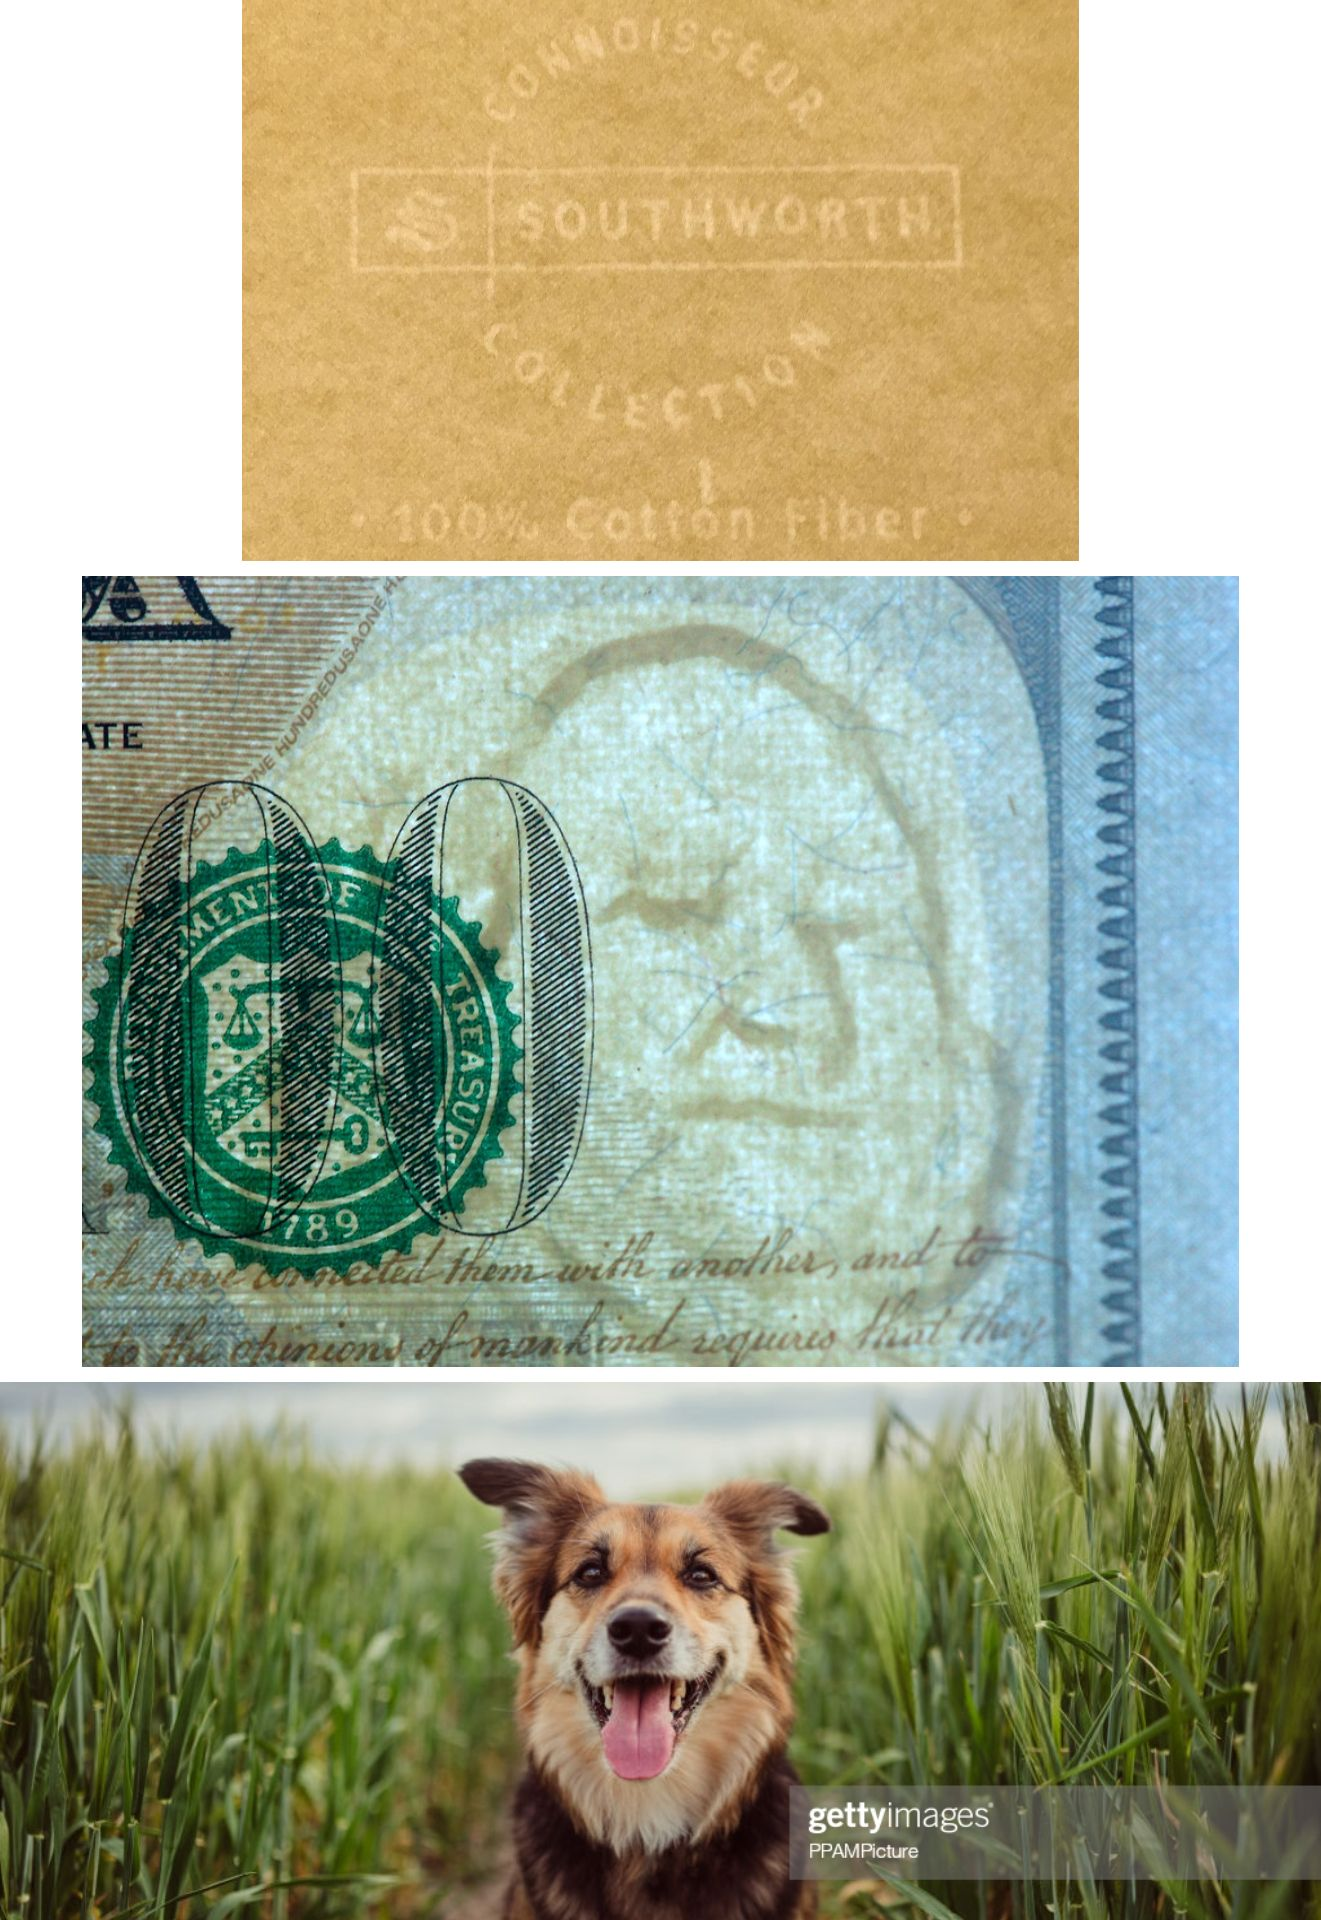 Three examples of different types of visual watermark.